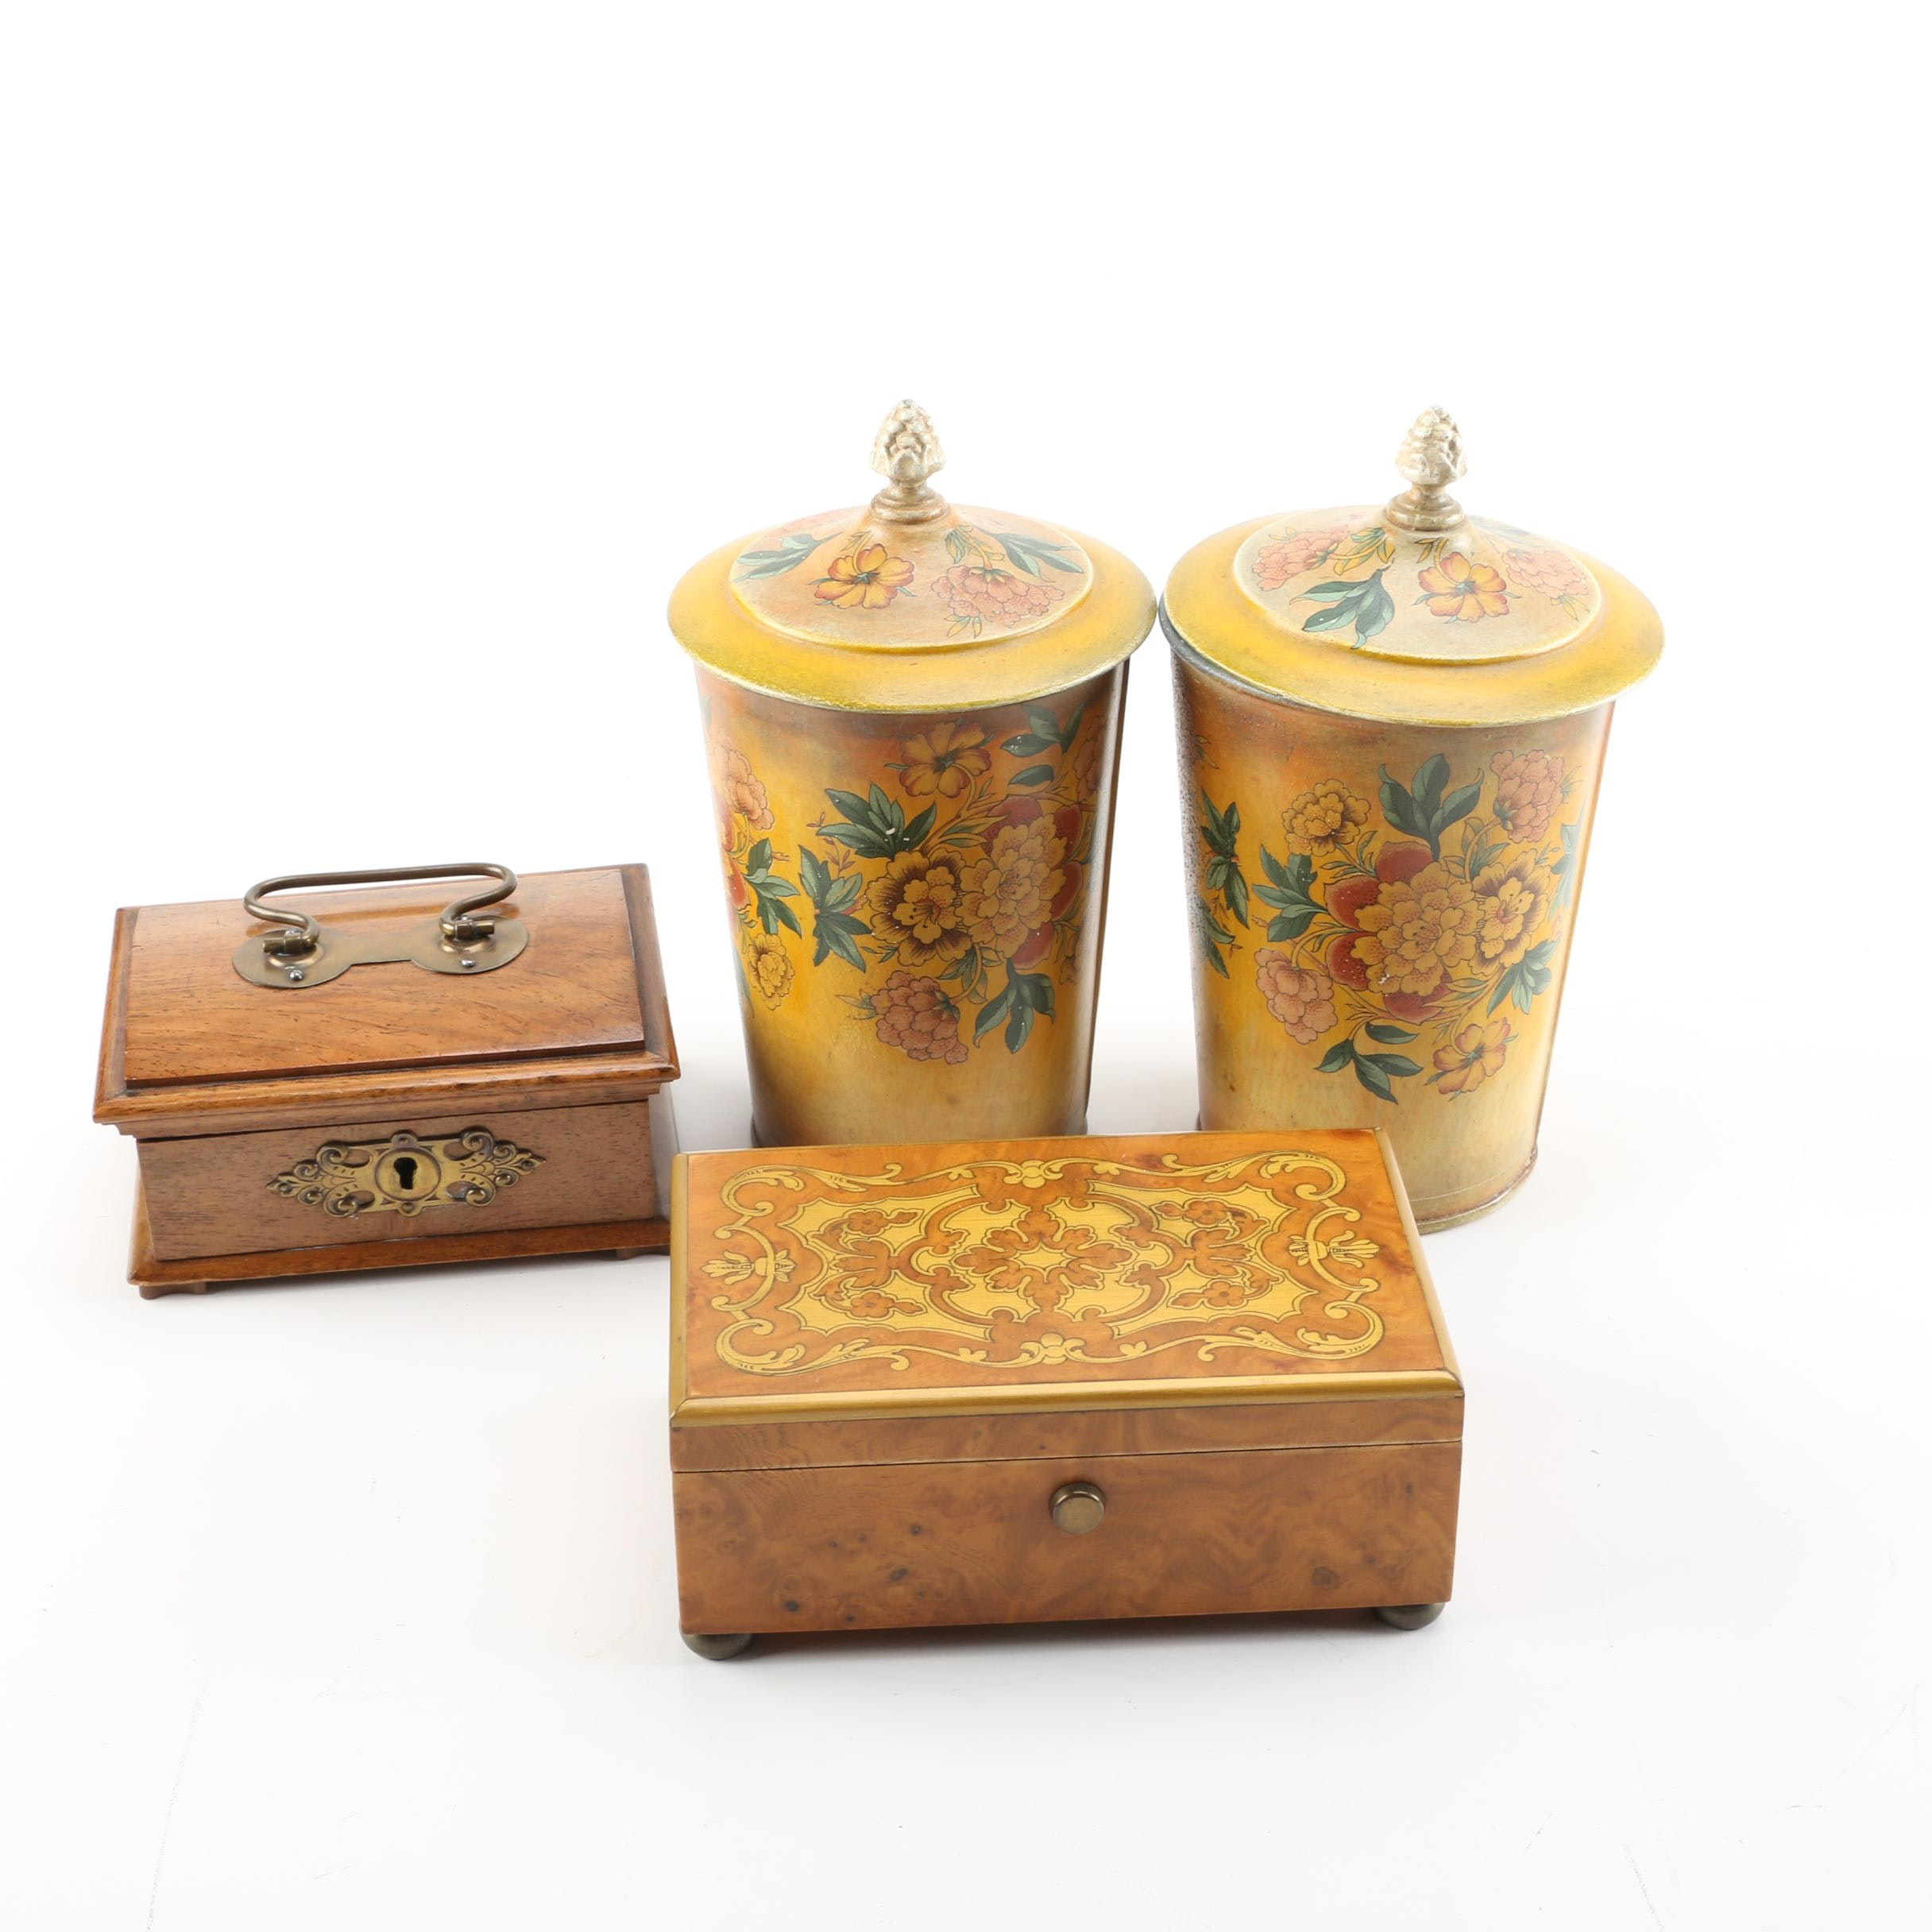 Decorative Containers and Boxes including Reuge